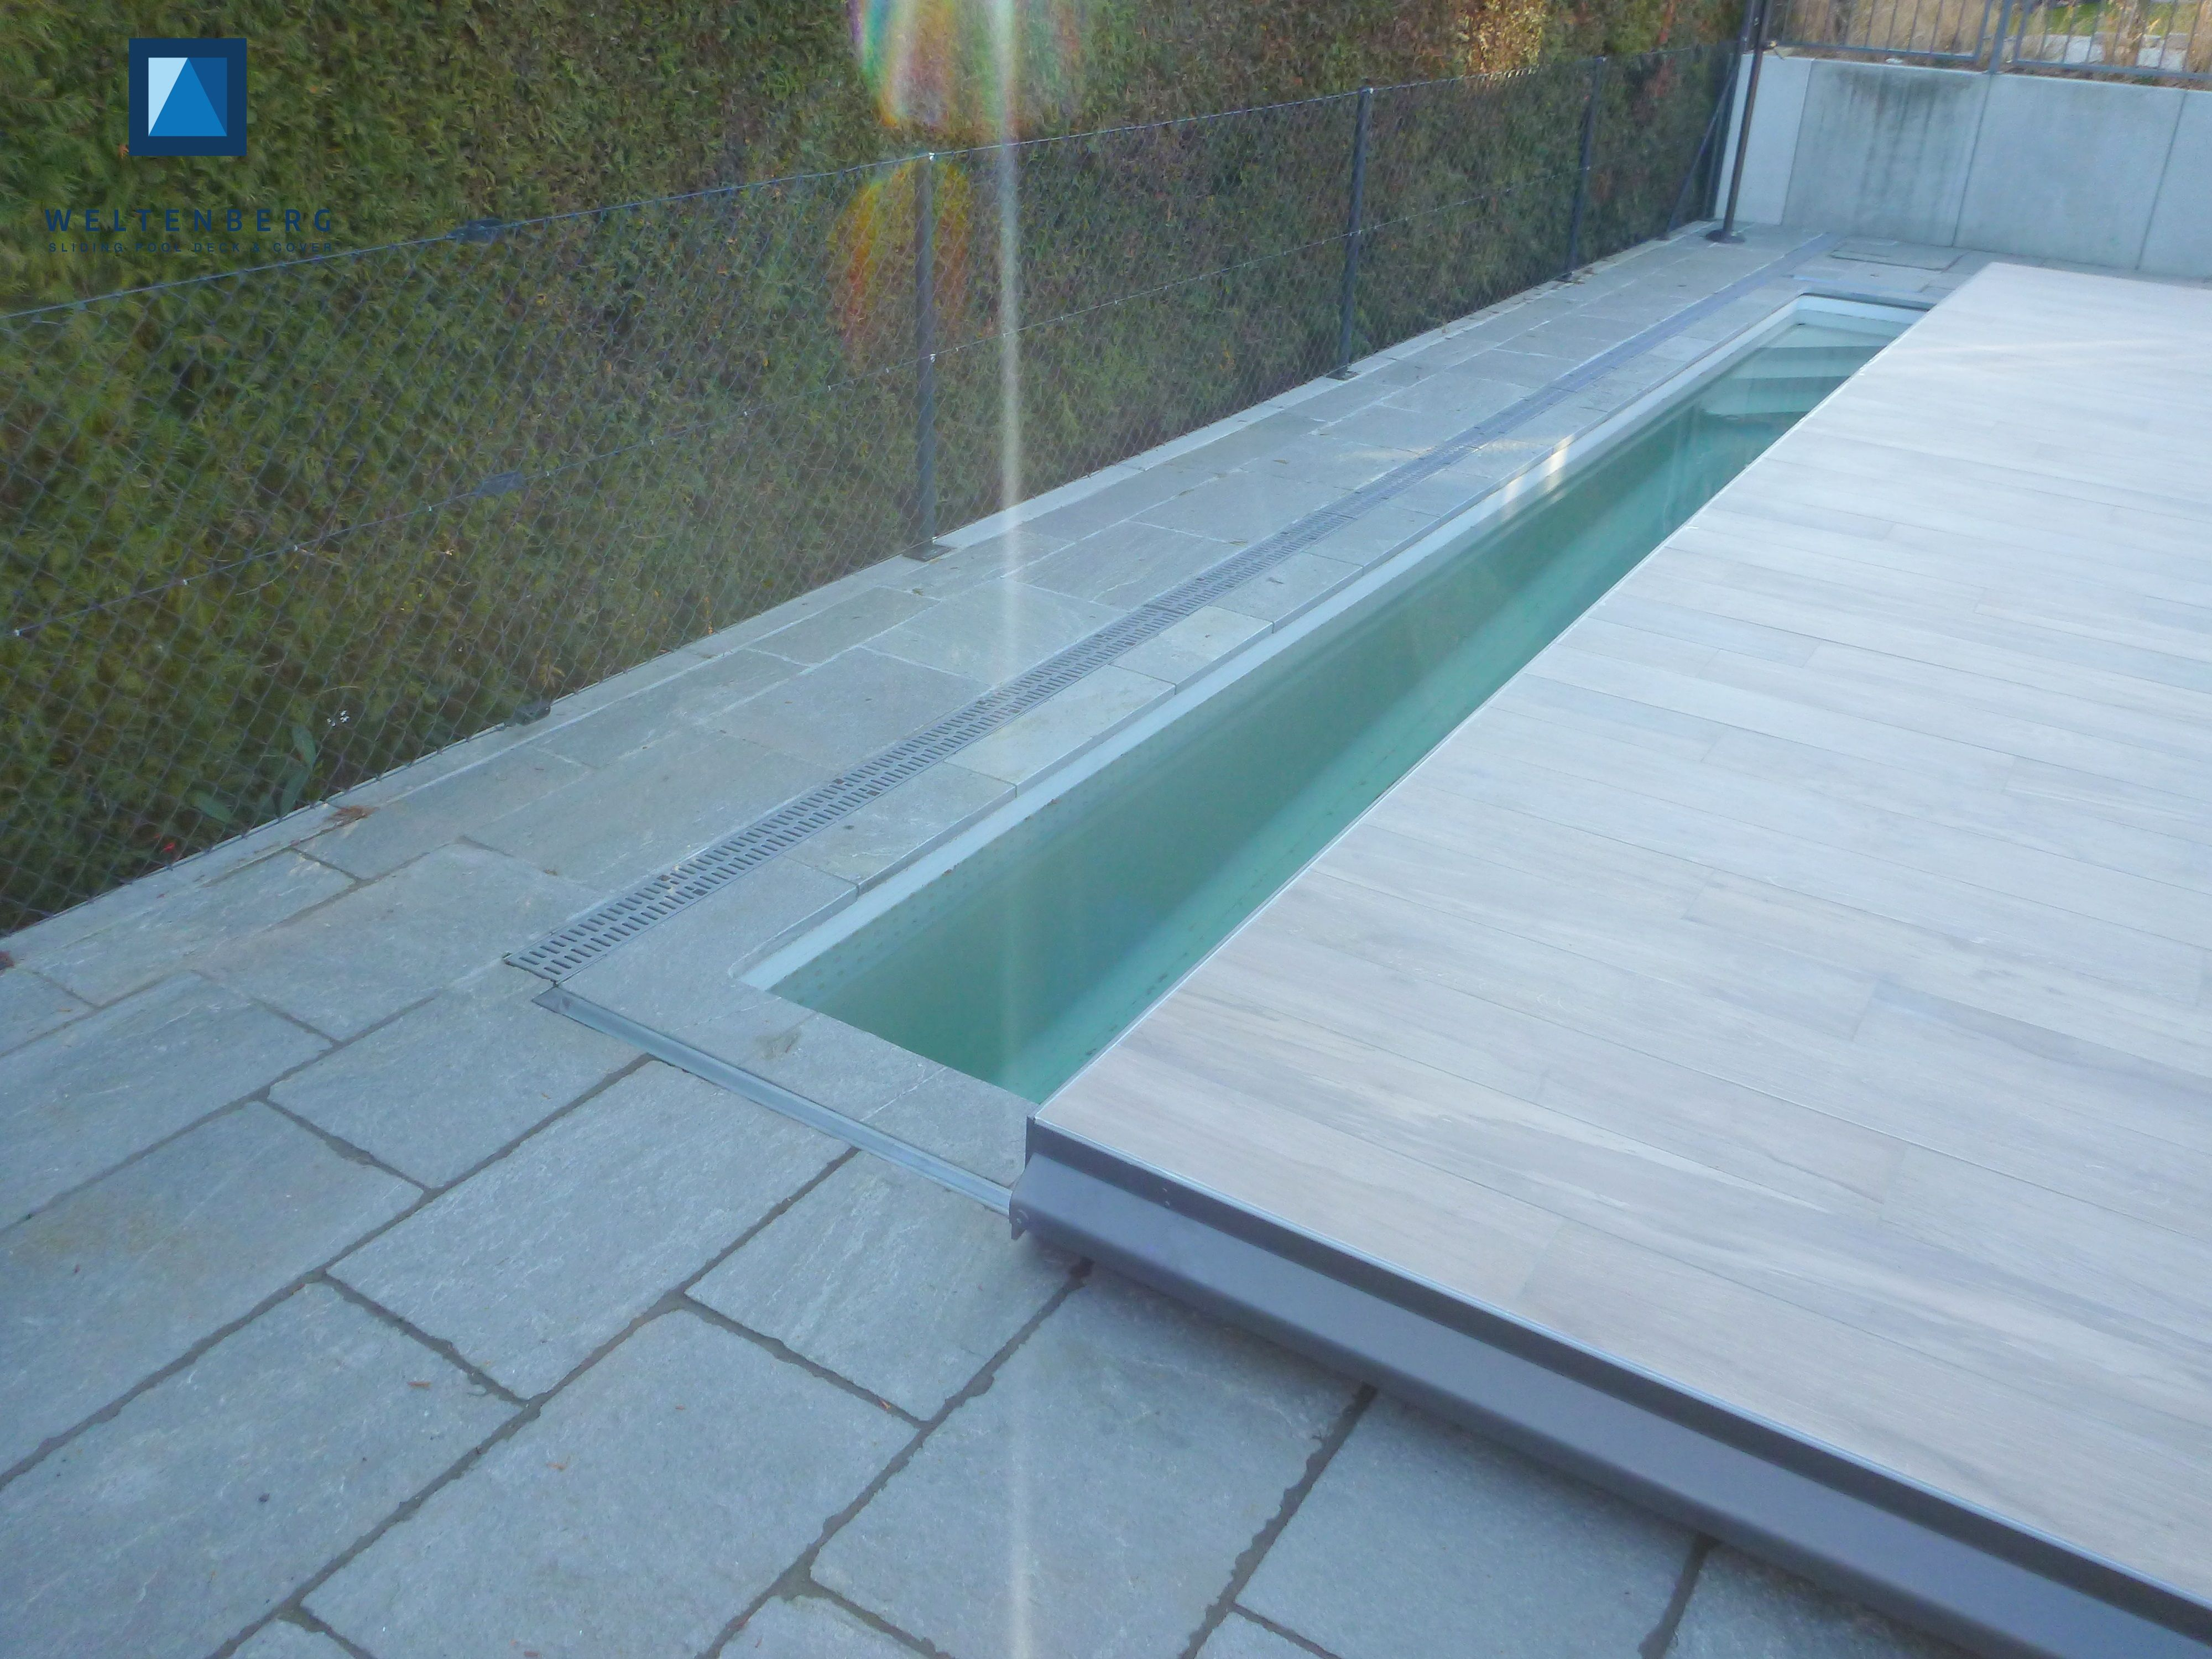 Sliding swimming pool cover and terrace, moveable pooldeck